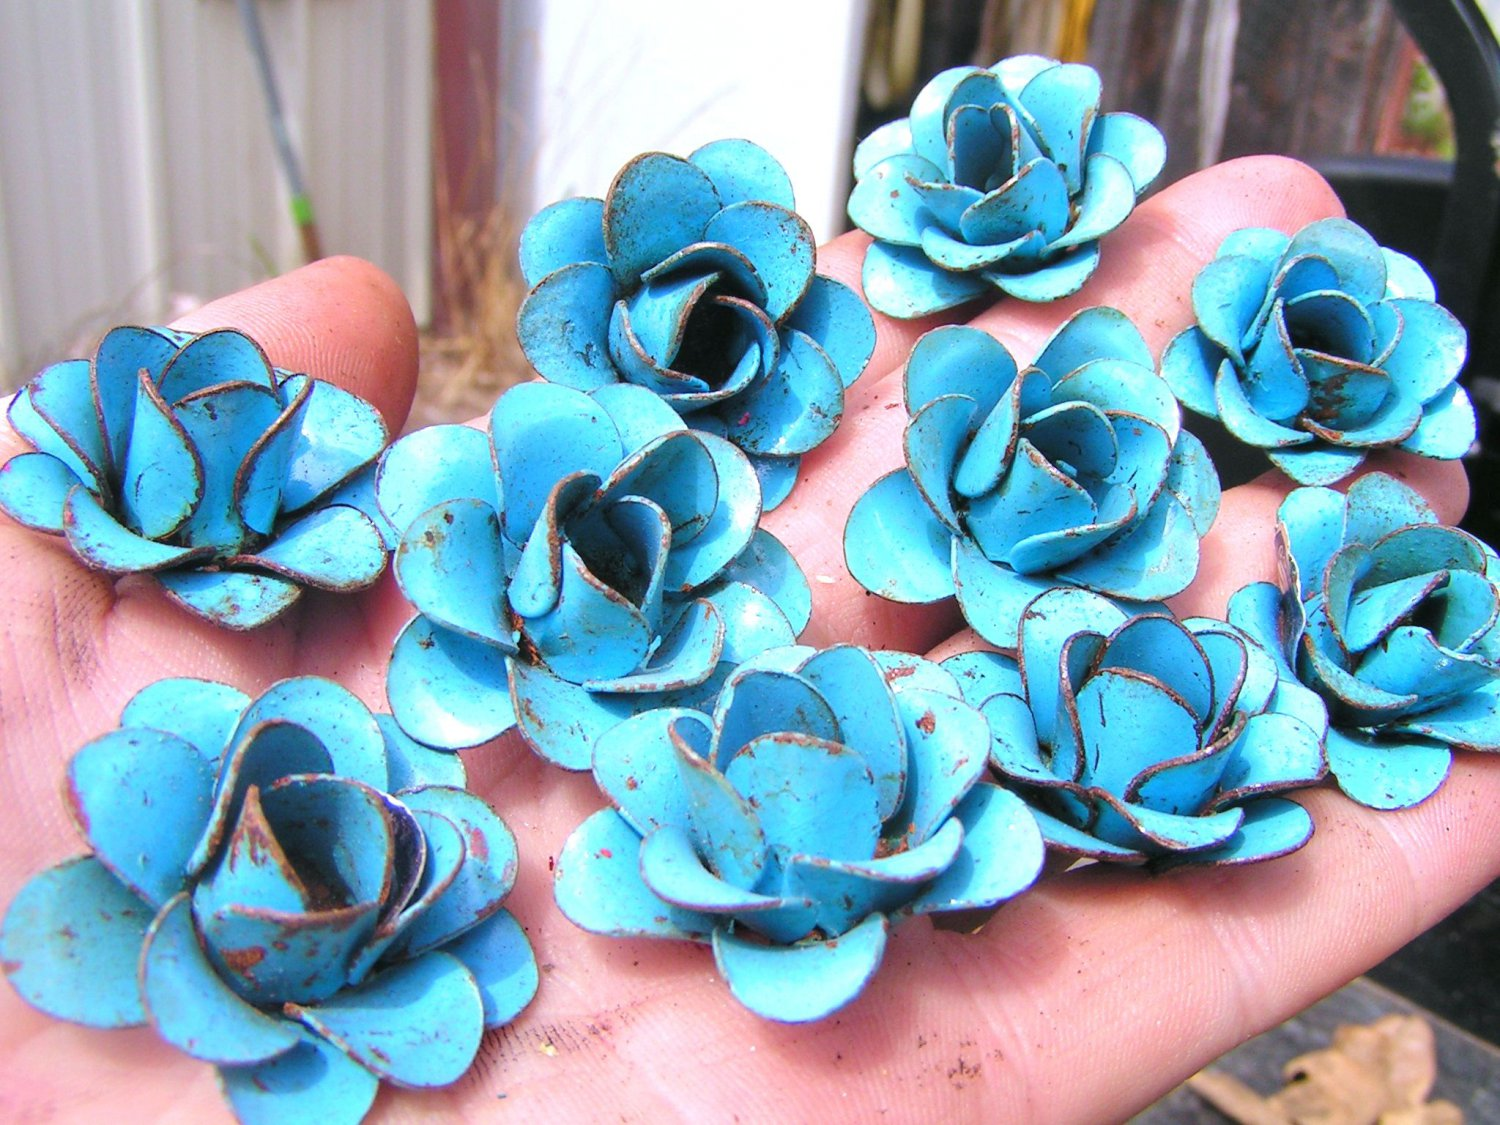 10 metal Blue roses, flowers for accents, embellishments, crafting, woodworking, arrangements